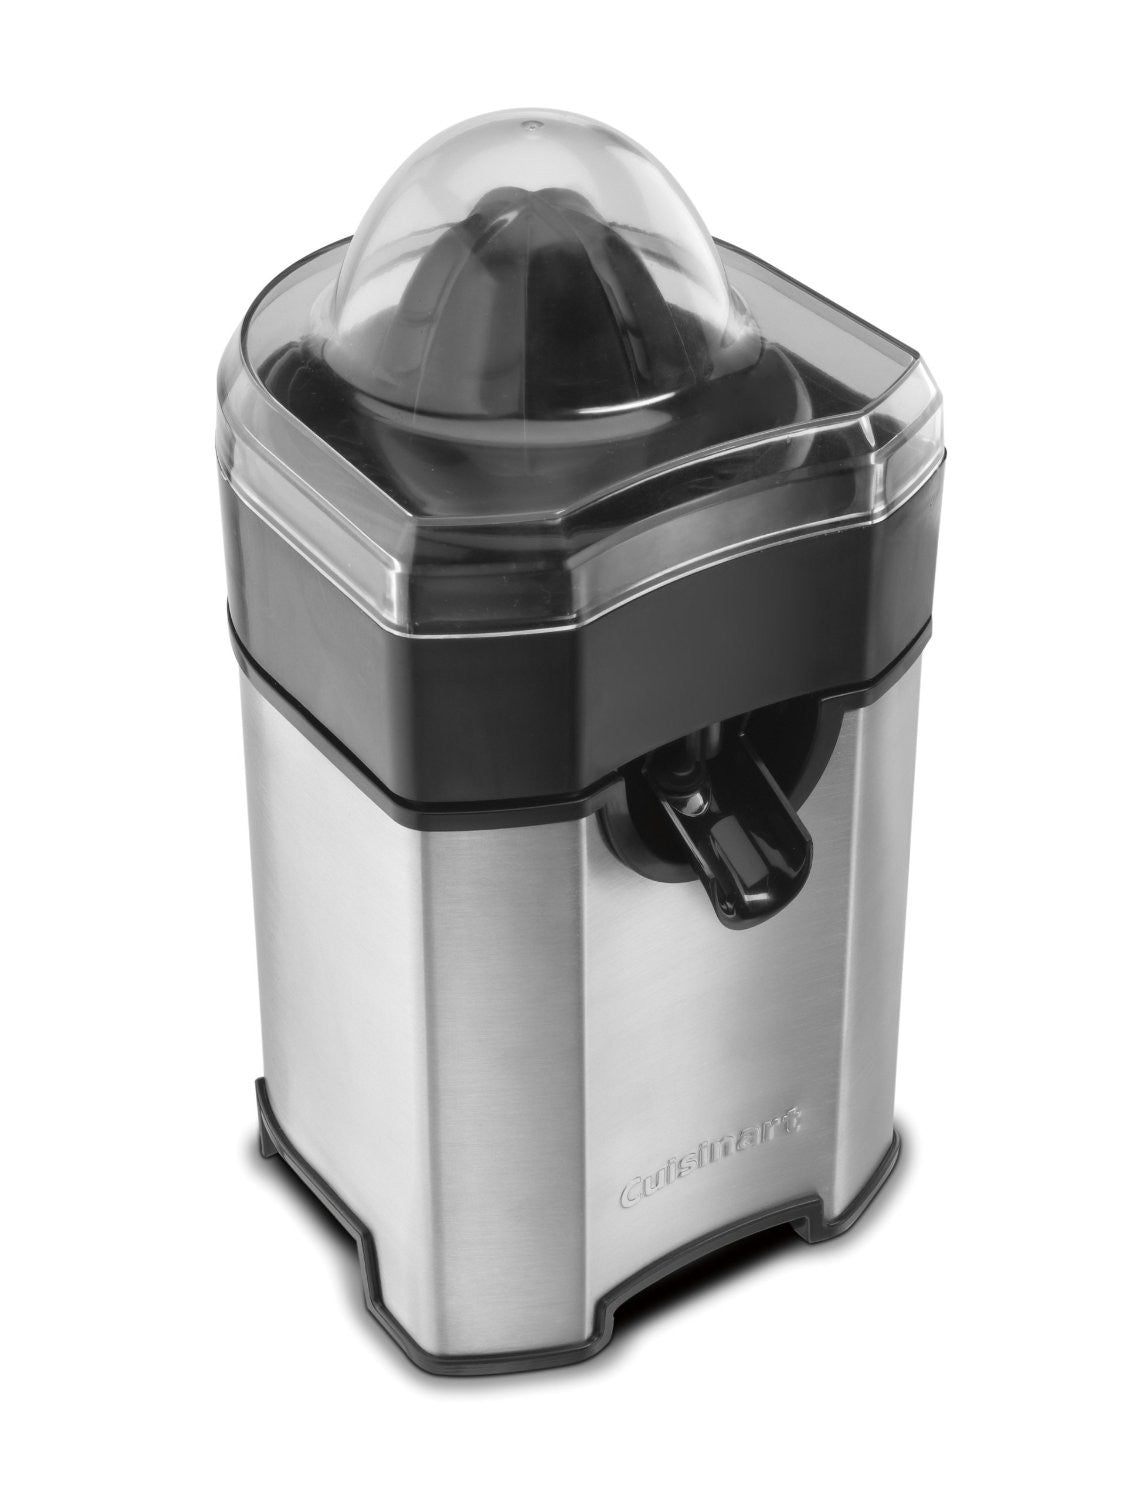 Cuisinart CCJ-500 Pulp Control Citrus Juicer, Brushed Stainless - All In One Place With Us - 6